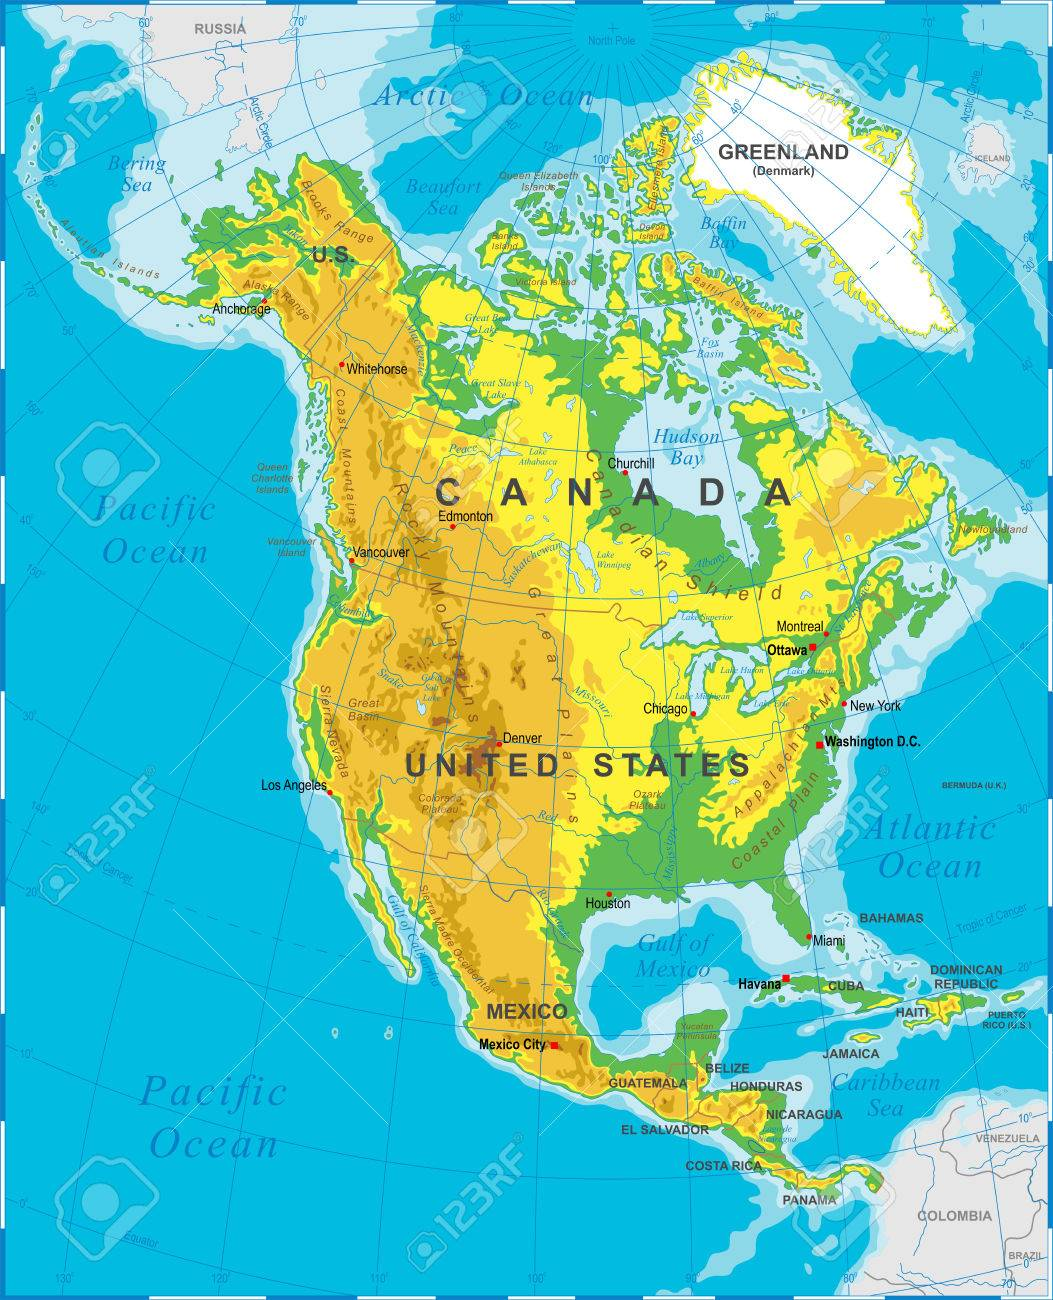 Highly Detailed Colored Illustration Of North America Map -borders ...